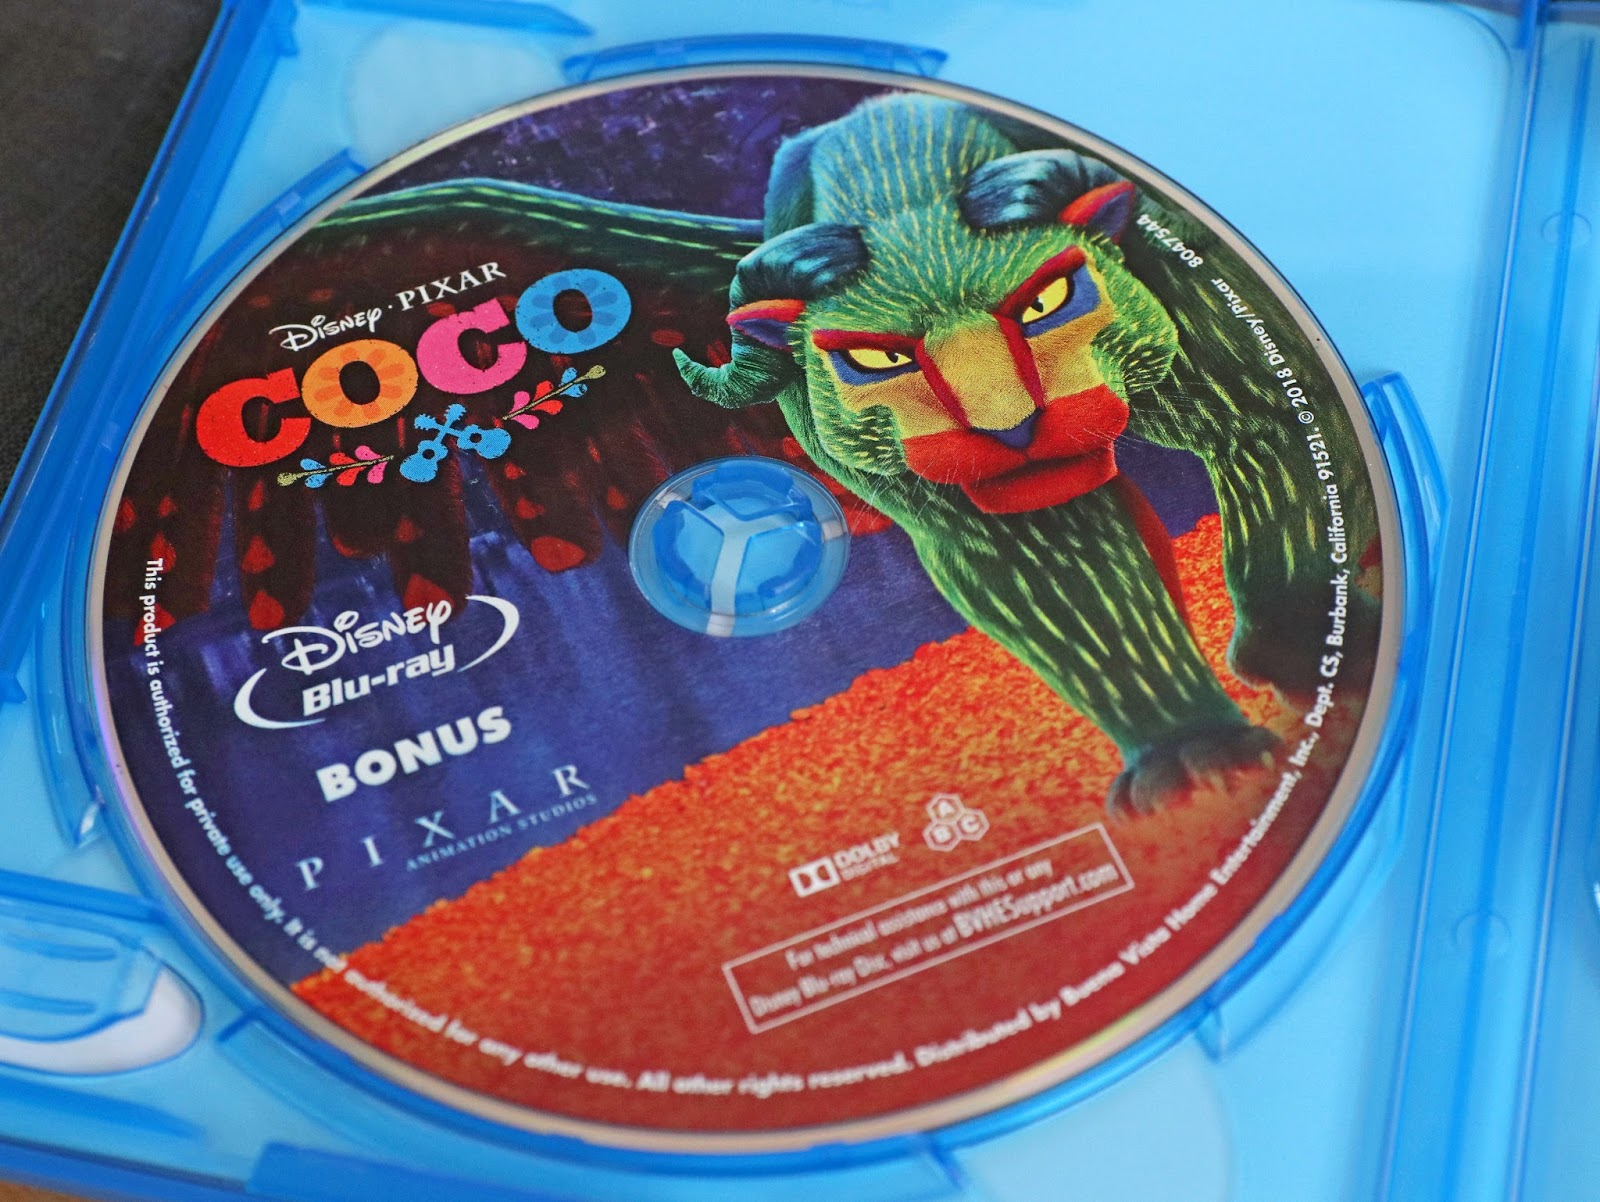 disney pixar coco in depth blu-ray review